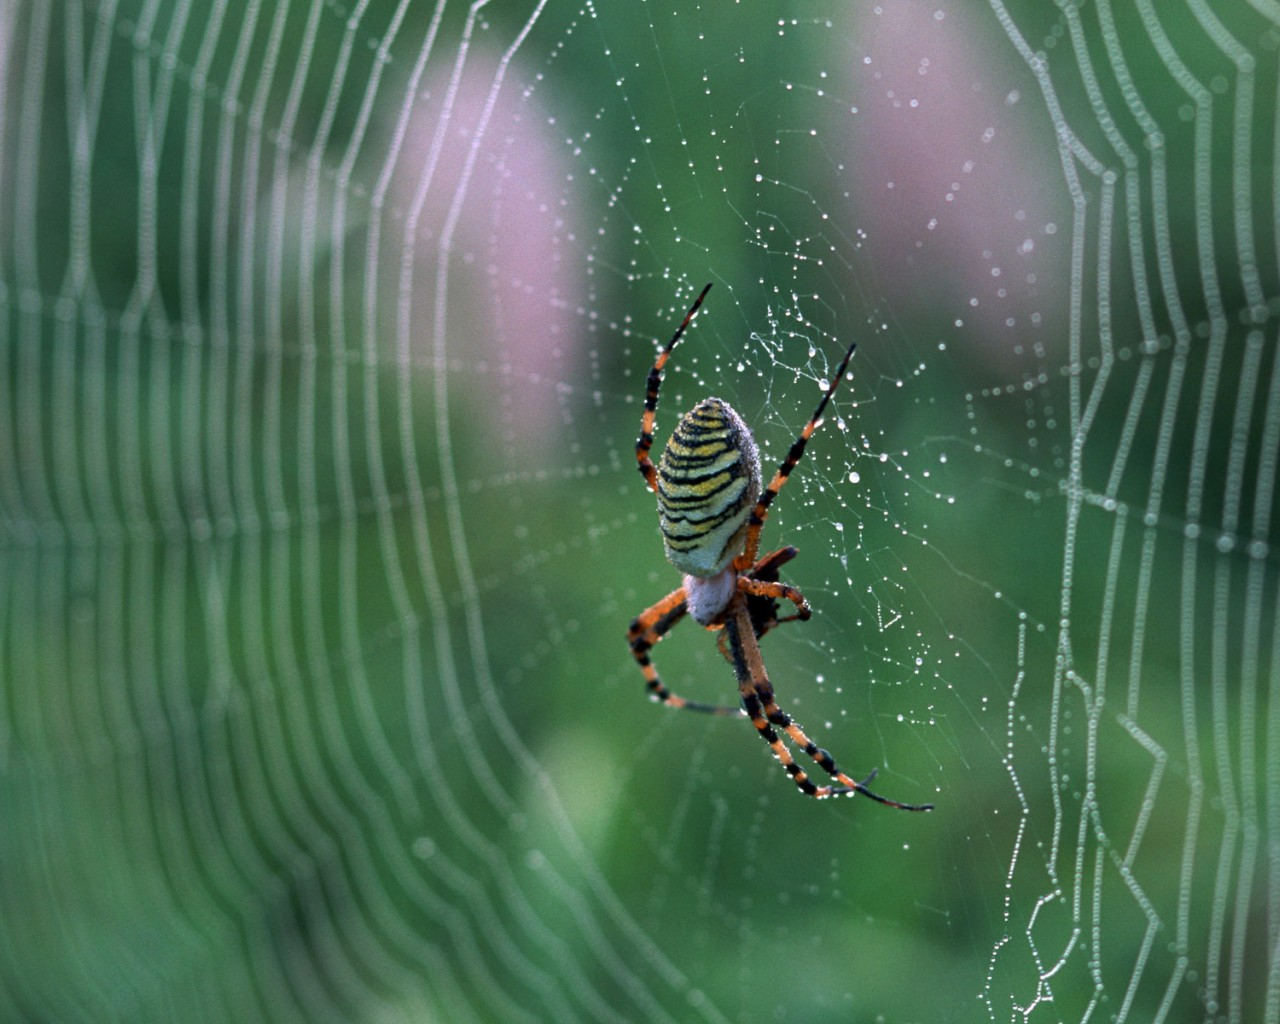 Spider on a Spider Web